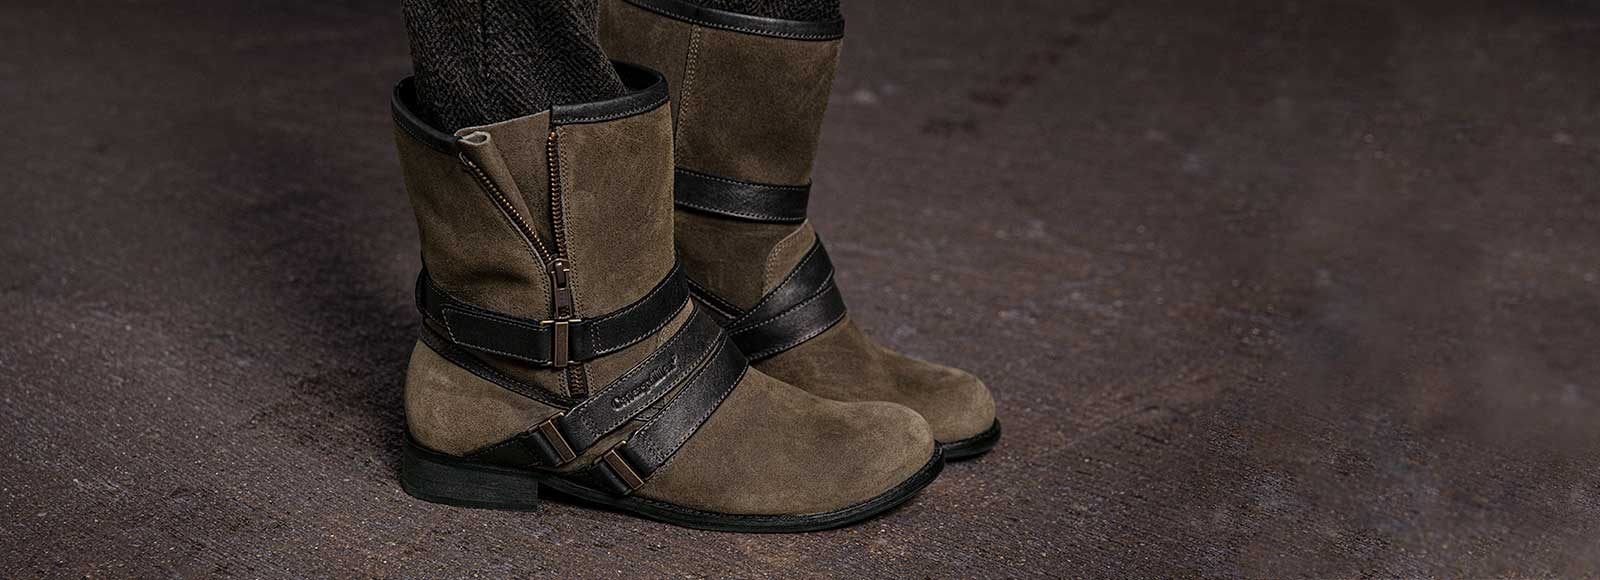 Boots with Buckles